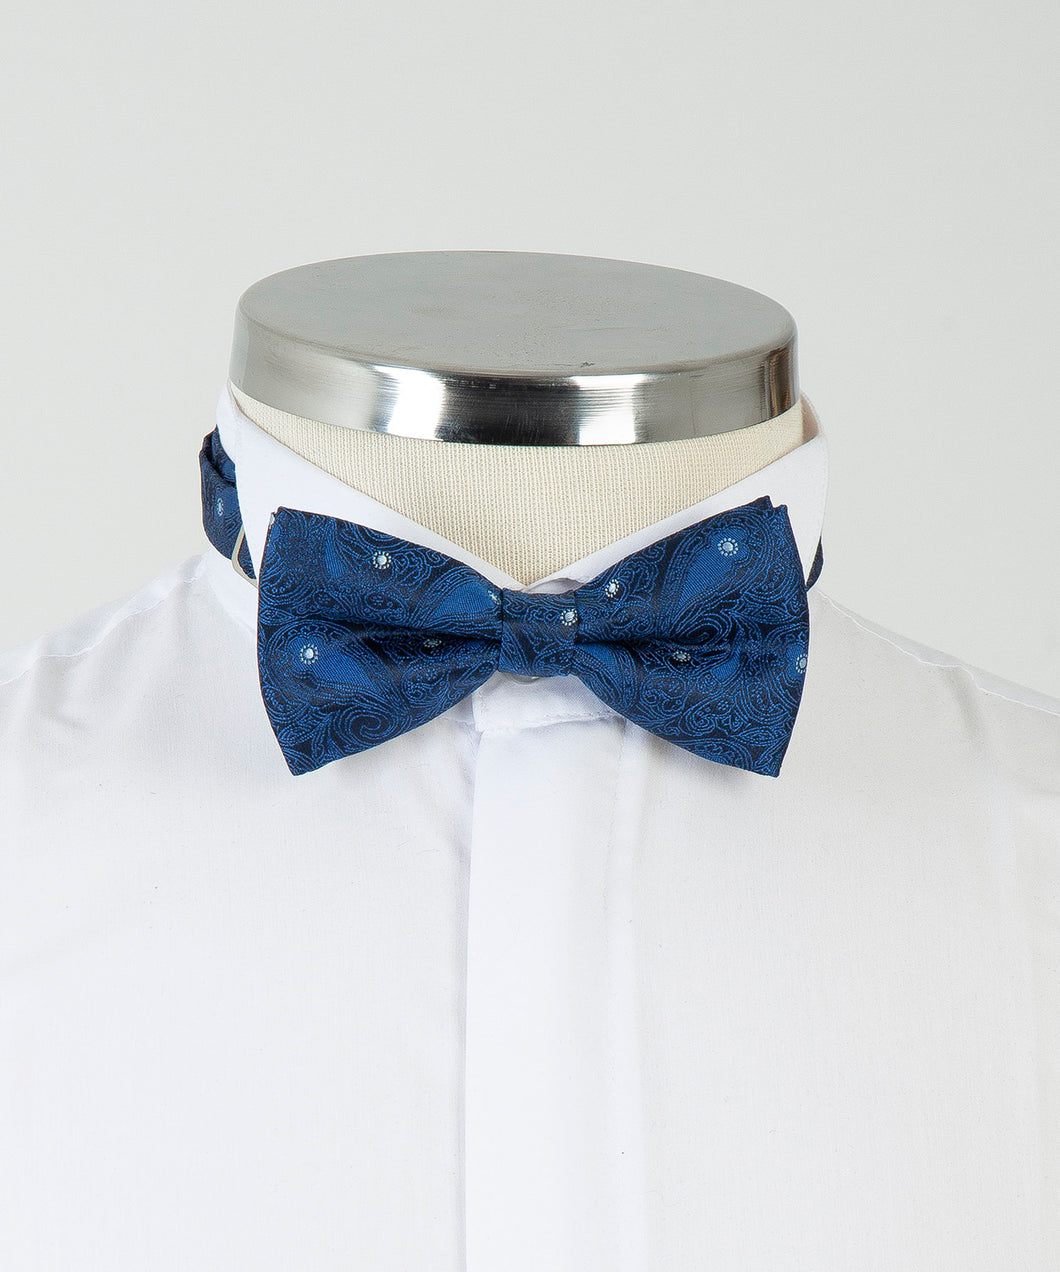 Patterned Bow Tie - Navy Blue